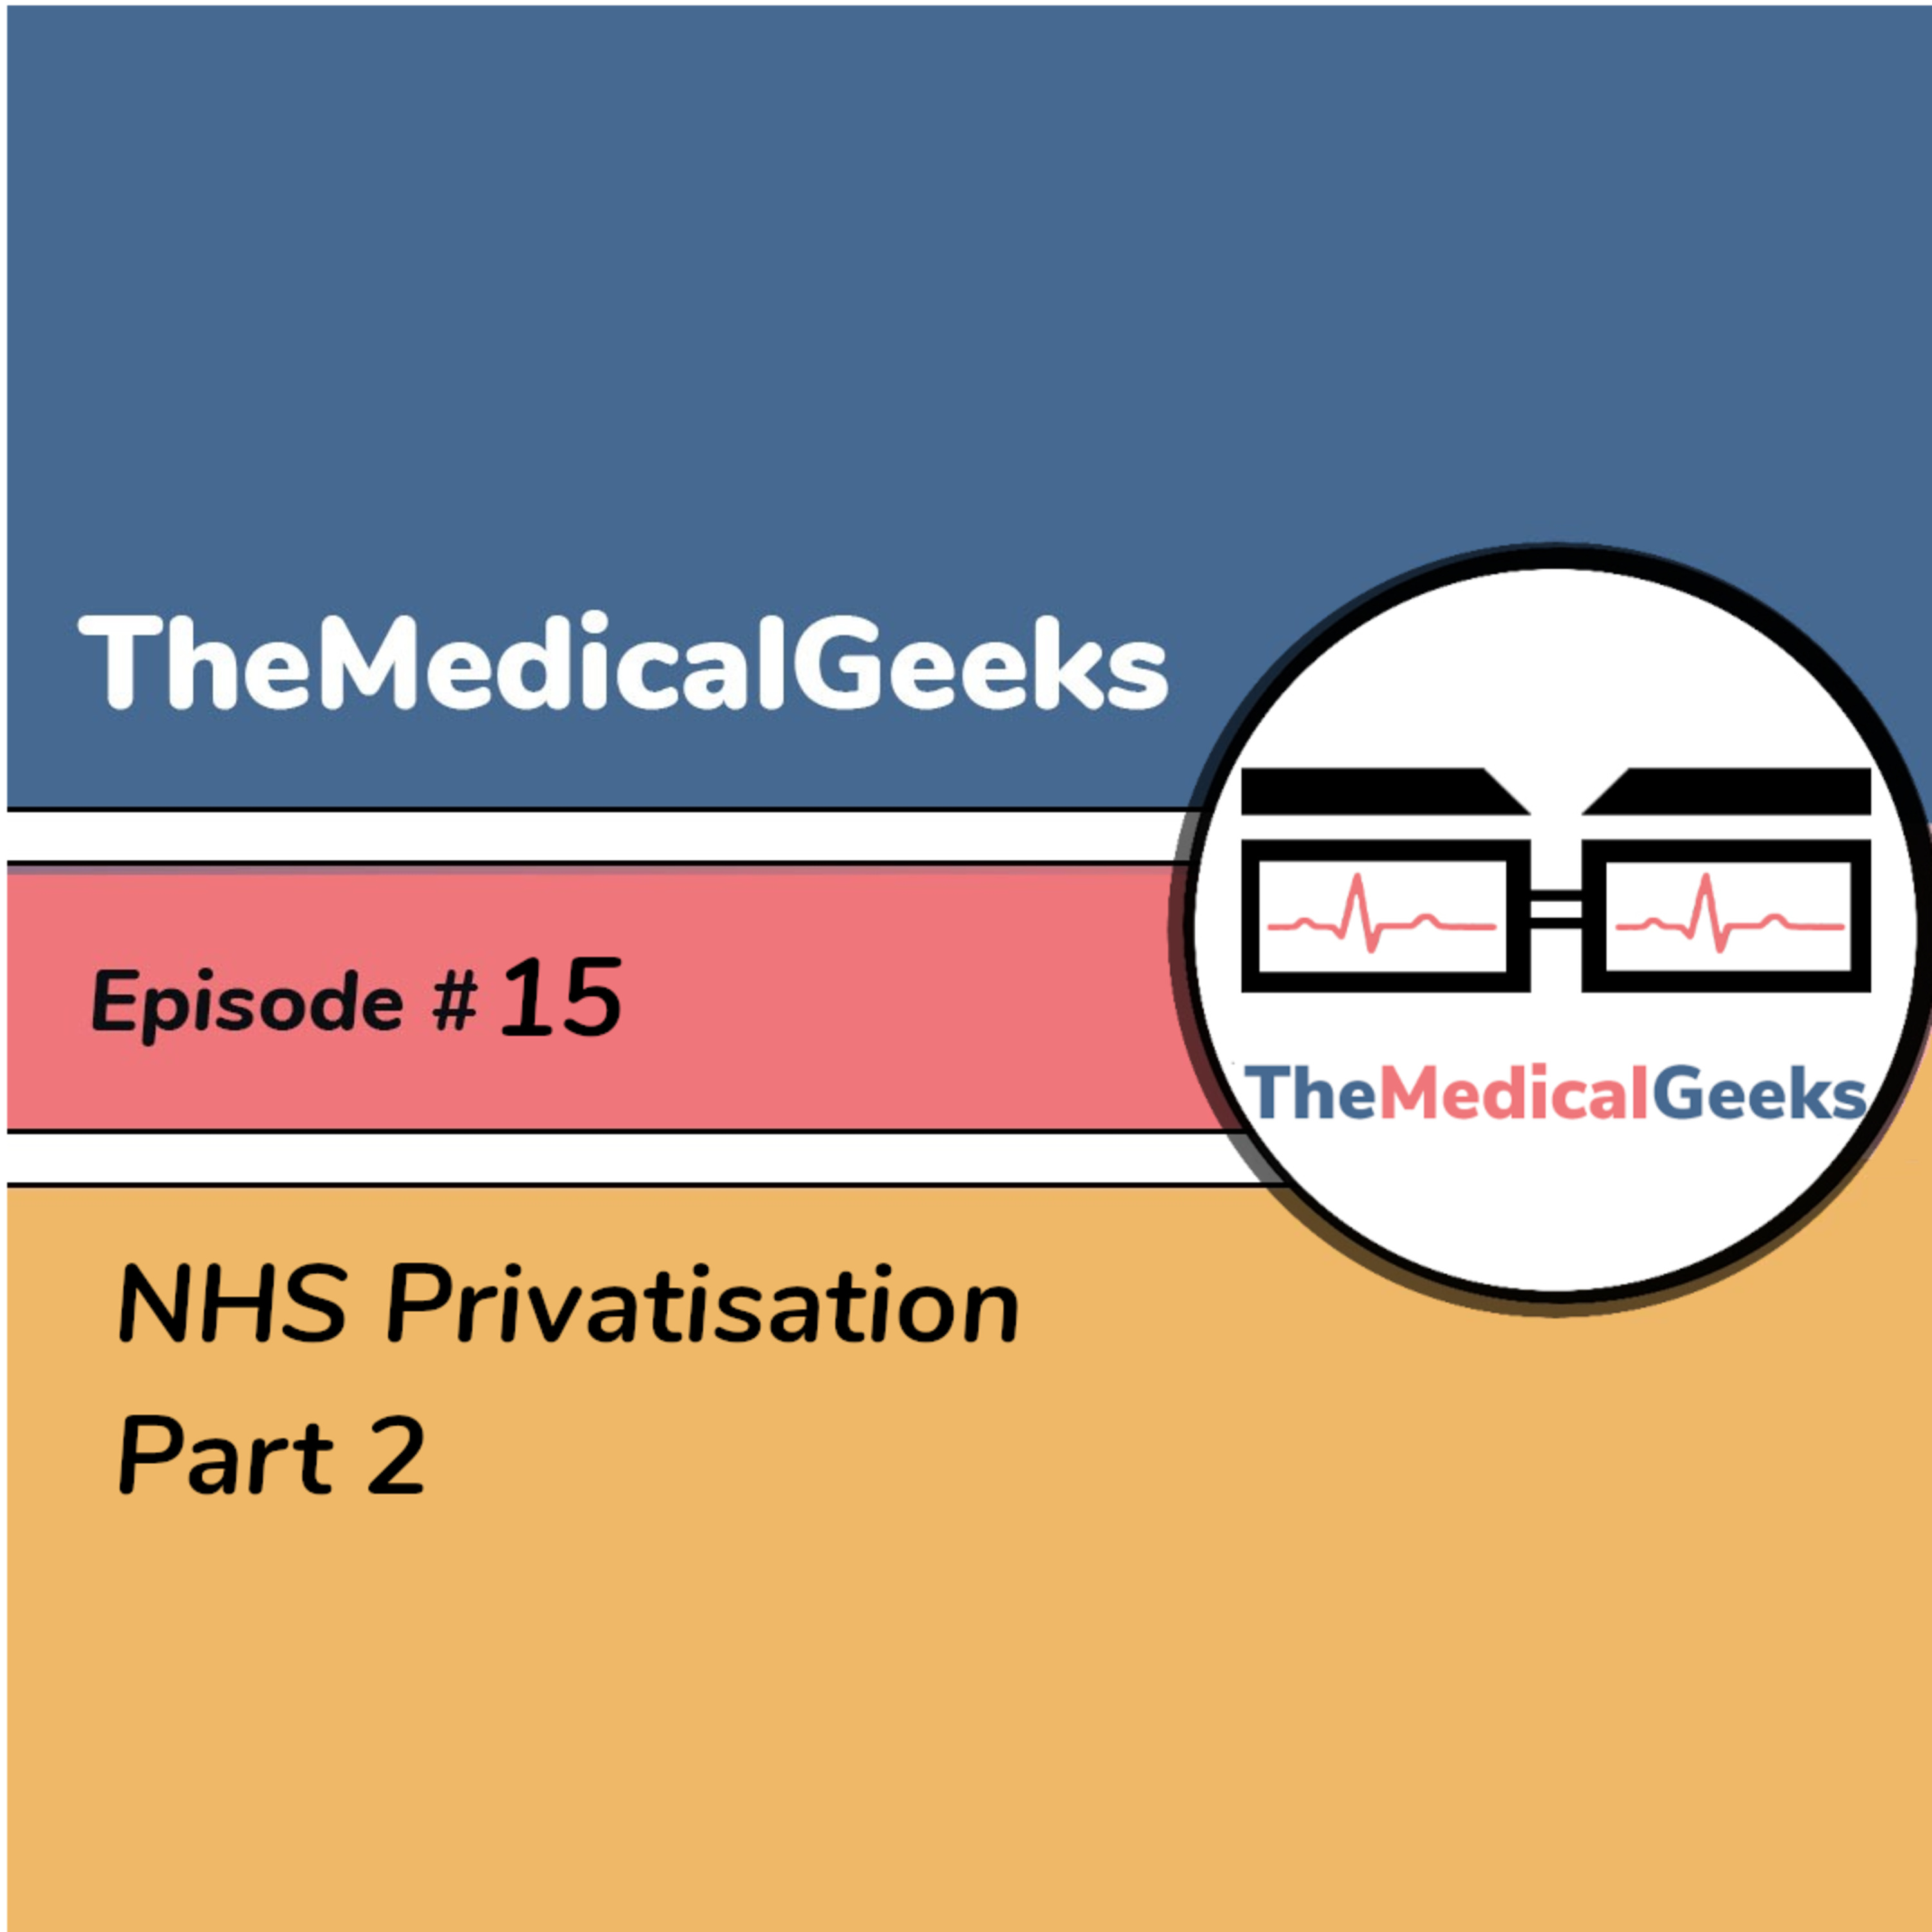 #15 Episode 15: NHS Privatisation Part 2